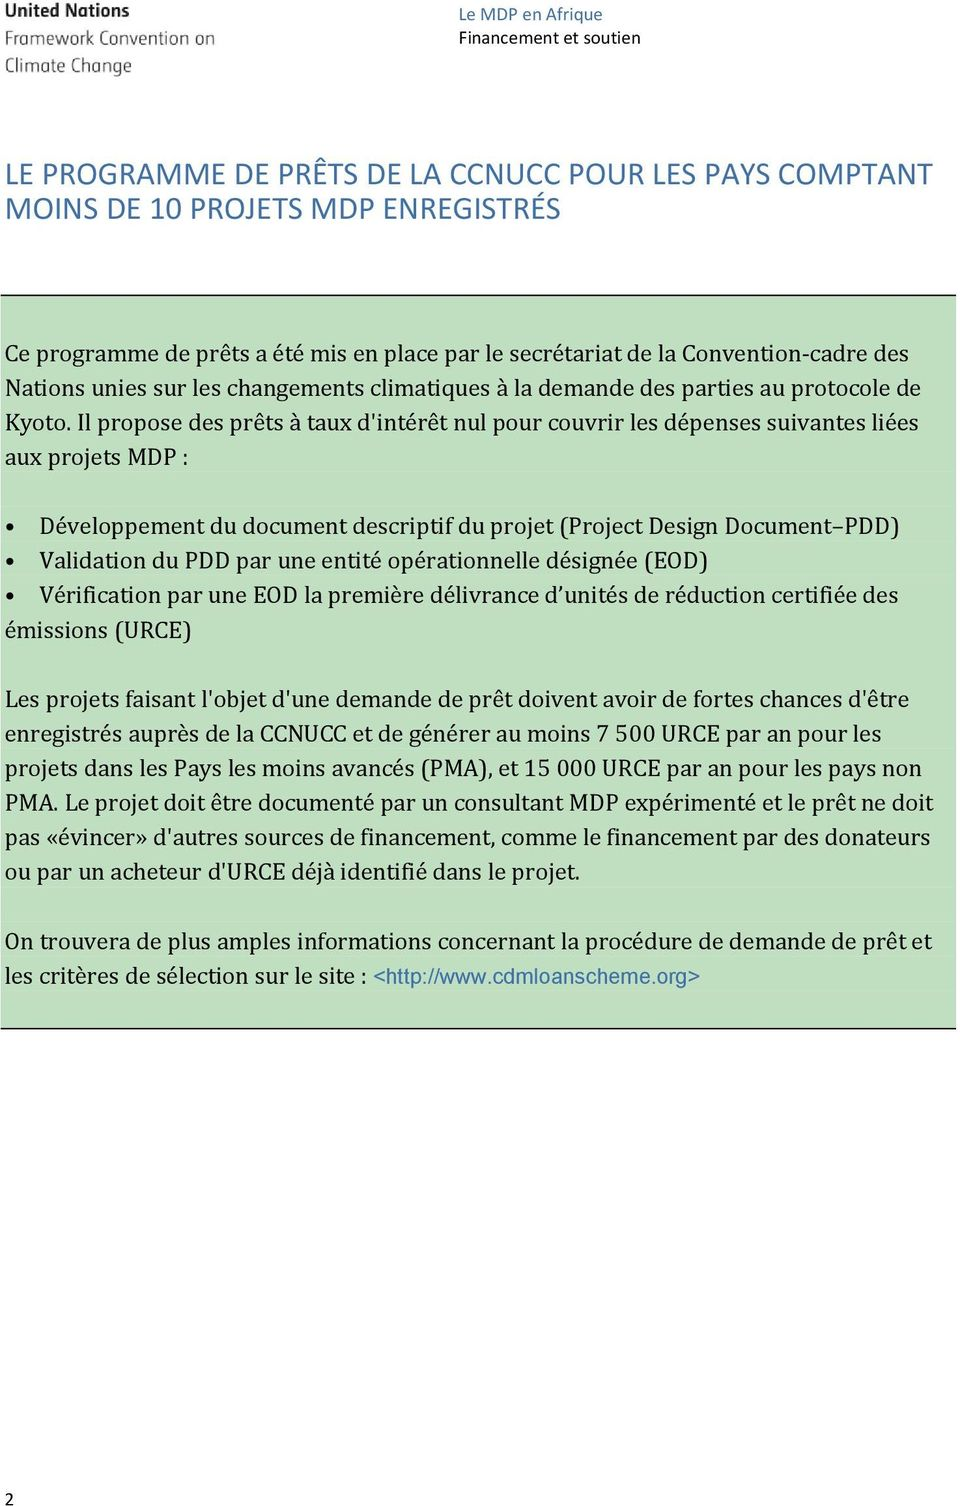 Il propose des prêts à taux d'intérêt nul pour couvrir les dépenses suivantes liées aux projets MDP : Développement du document descriptif du projet (Project Design Document PDD) Validation du PDD